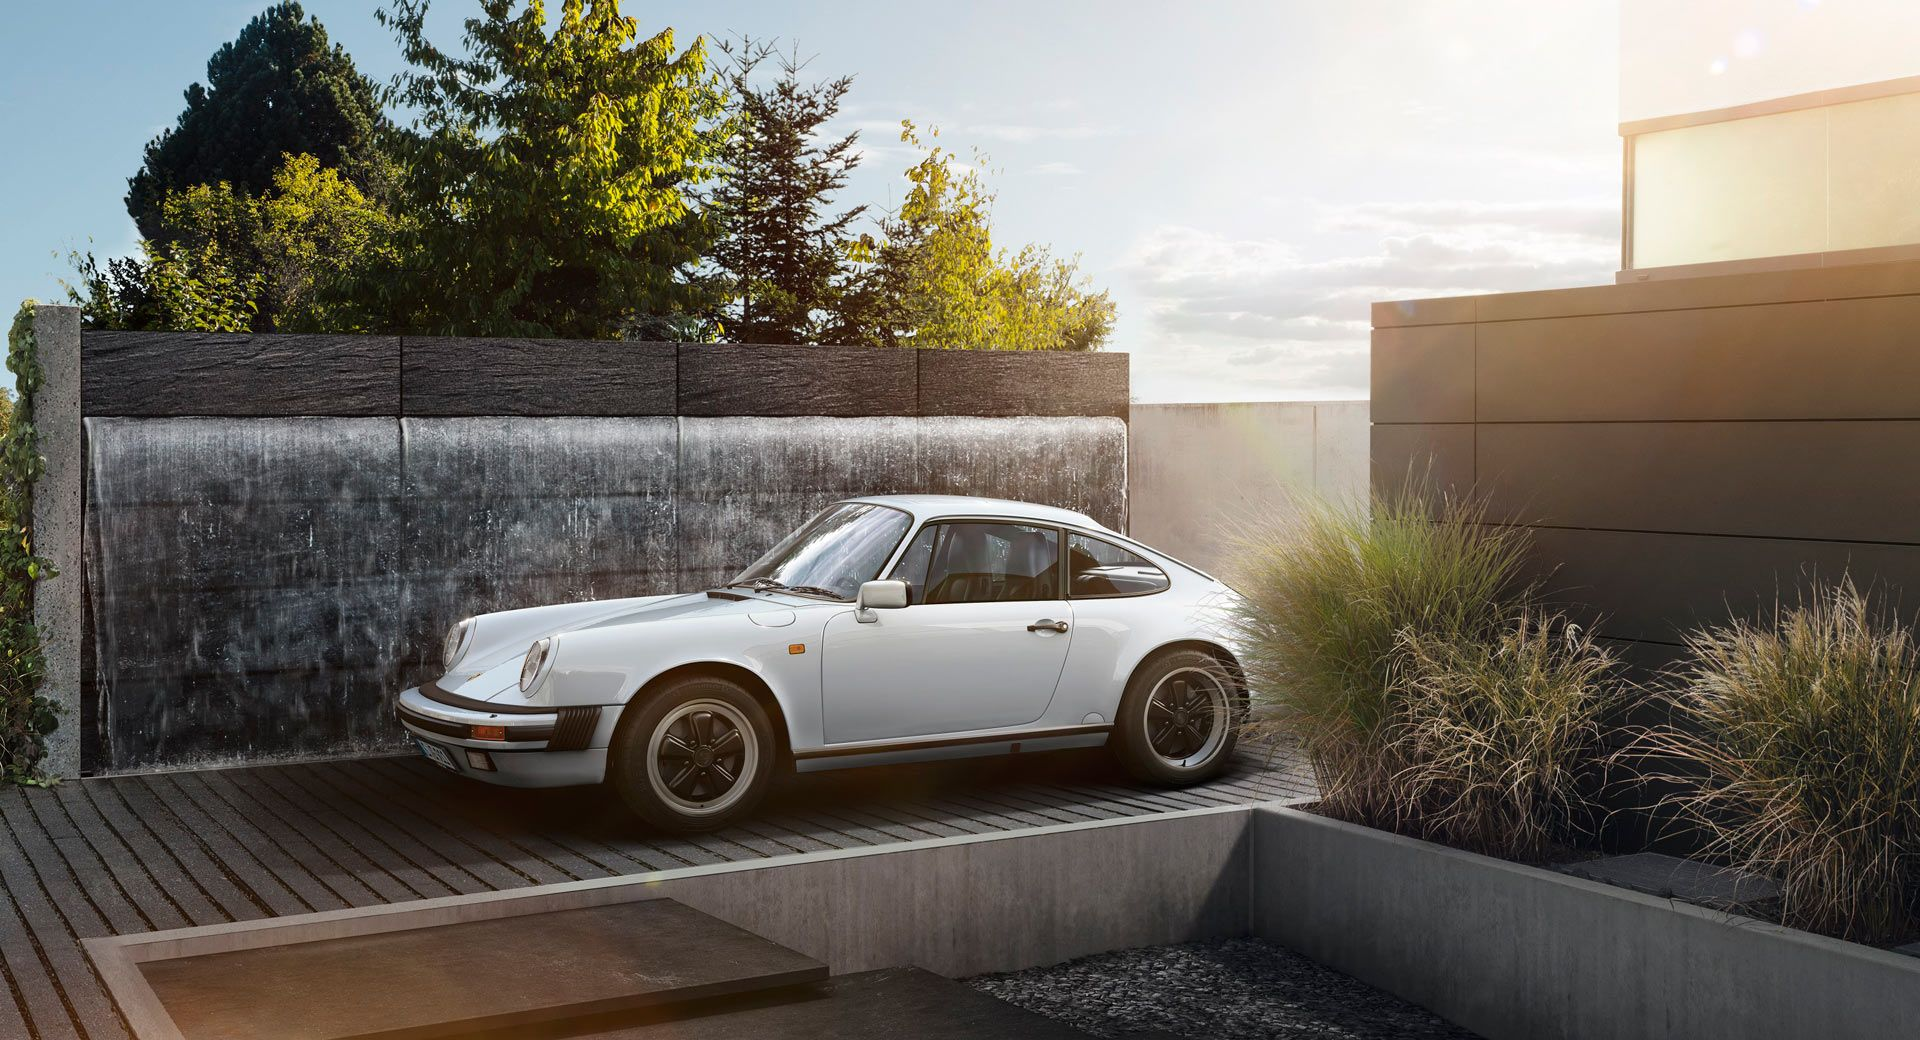 Porsche Launches Nationwide Used Car Search Show Us Your Favorite Finds Offbeatnews Porsche Sales Usedcars Cars Cars Classic Porsche Porsche Car Search